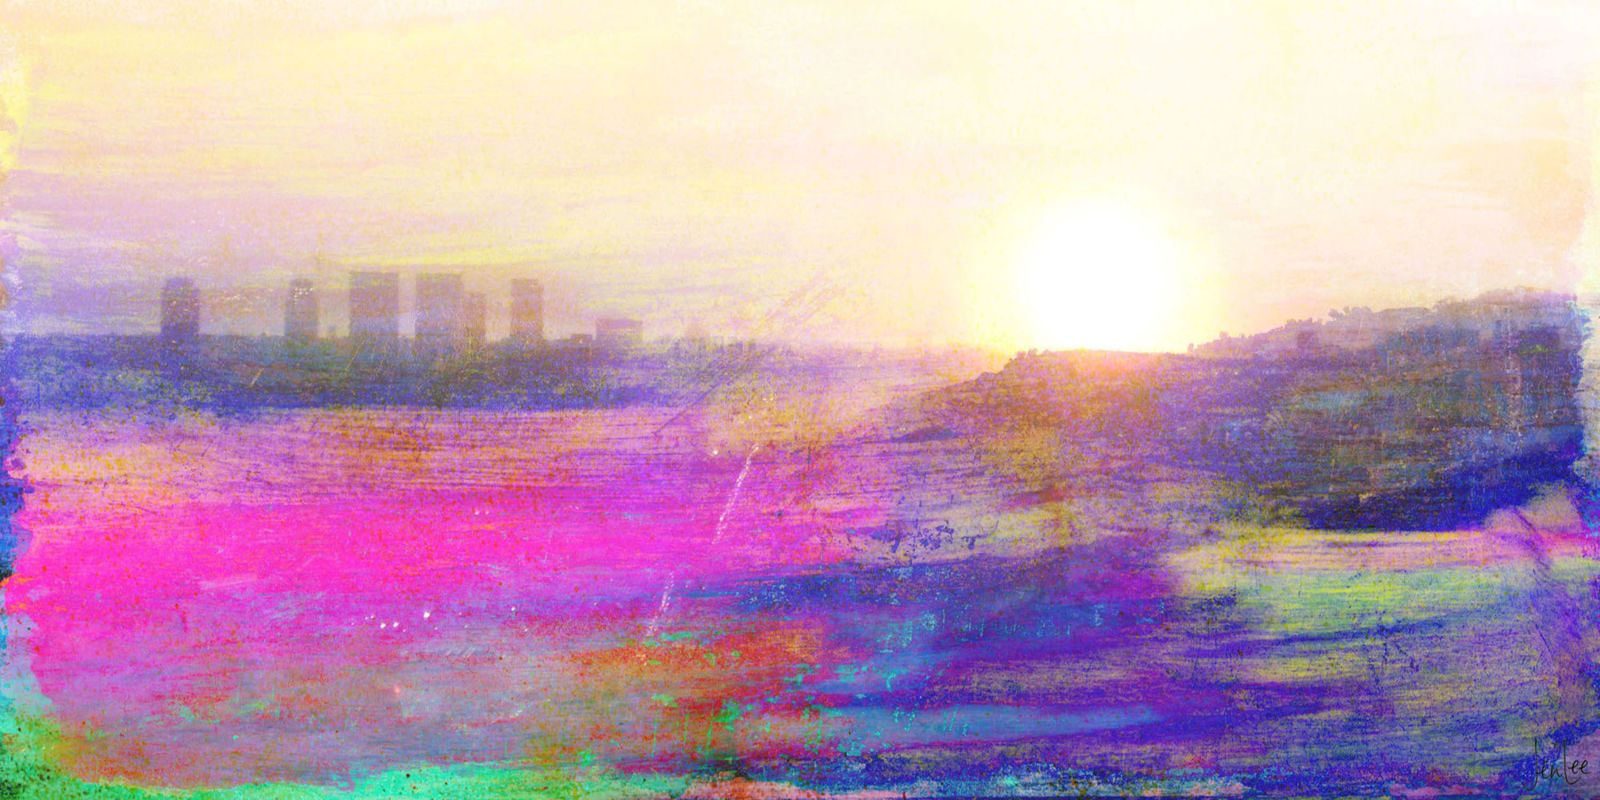 Marmont Hill The View Premium Gallery Wrapped Canvas Art 18 x 36 Home Sale $247.00 ITEM: bci2677651 ID#:Jen Lee-74-C-36 UPC: 799559126155 :